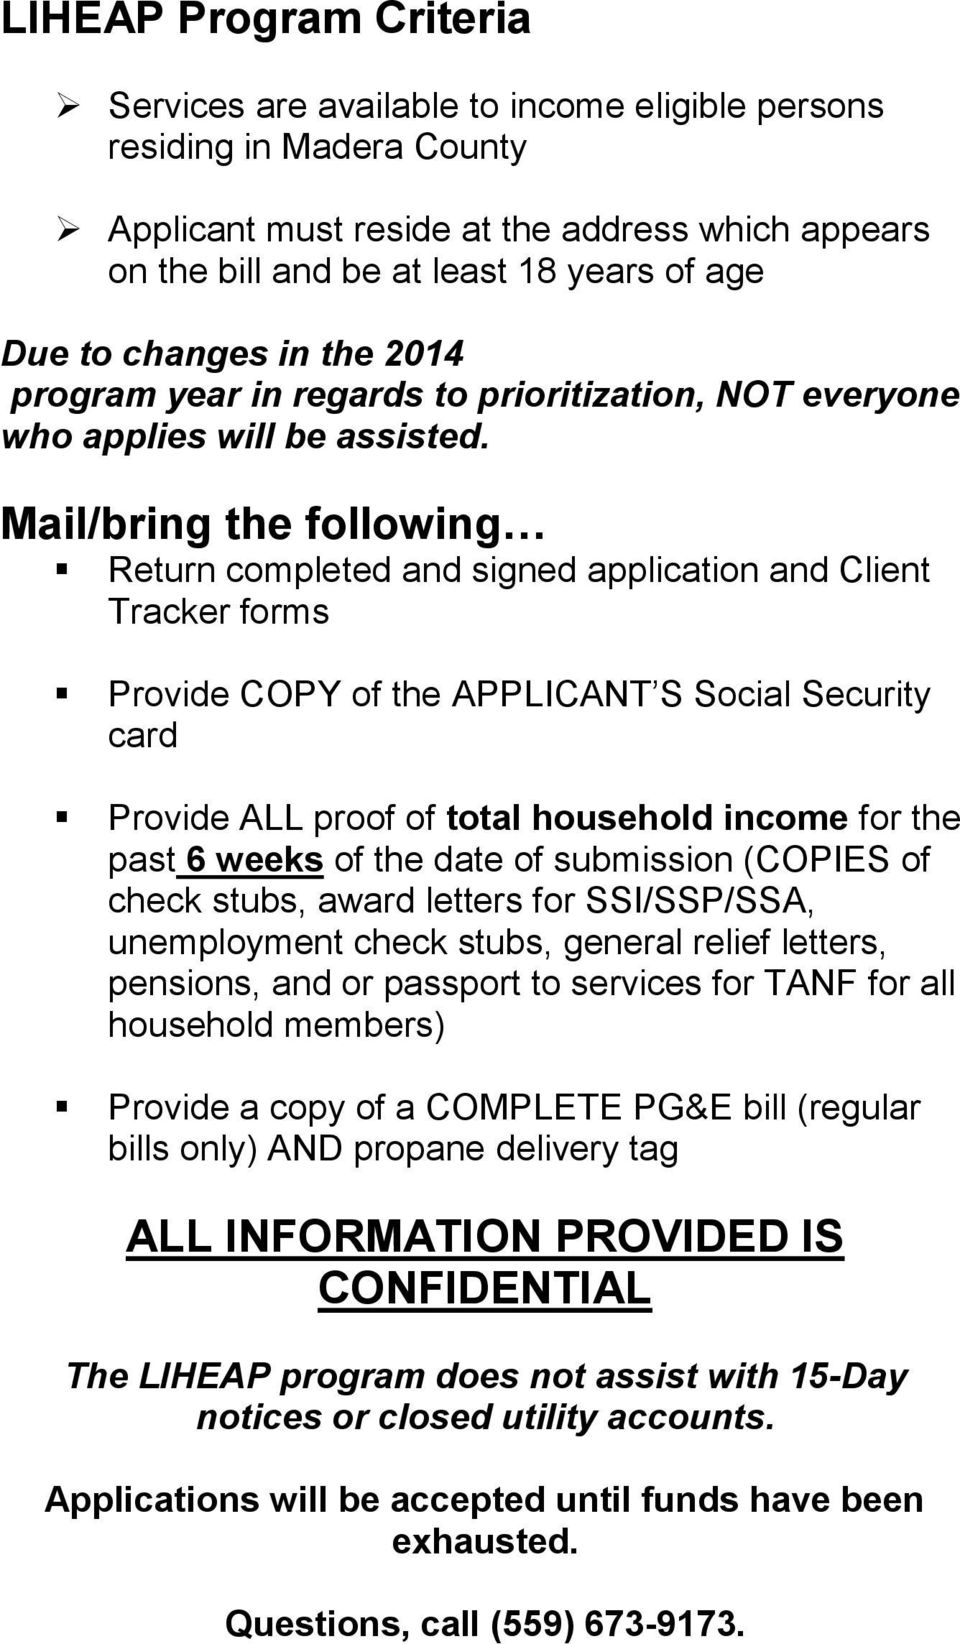 Mail/bring the following Return completed and signed application and Client Tracker forms Provide COPY of the APPLICANT S Social Security card Provide ALL proof of total household income for the past